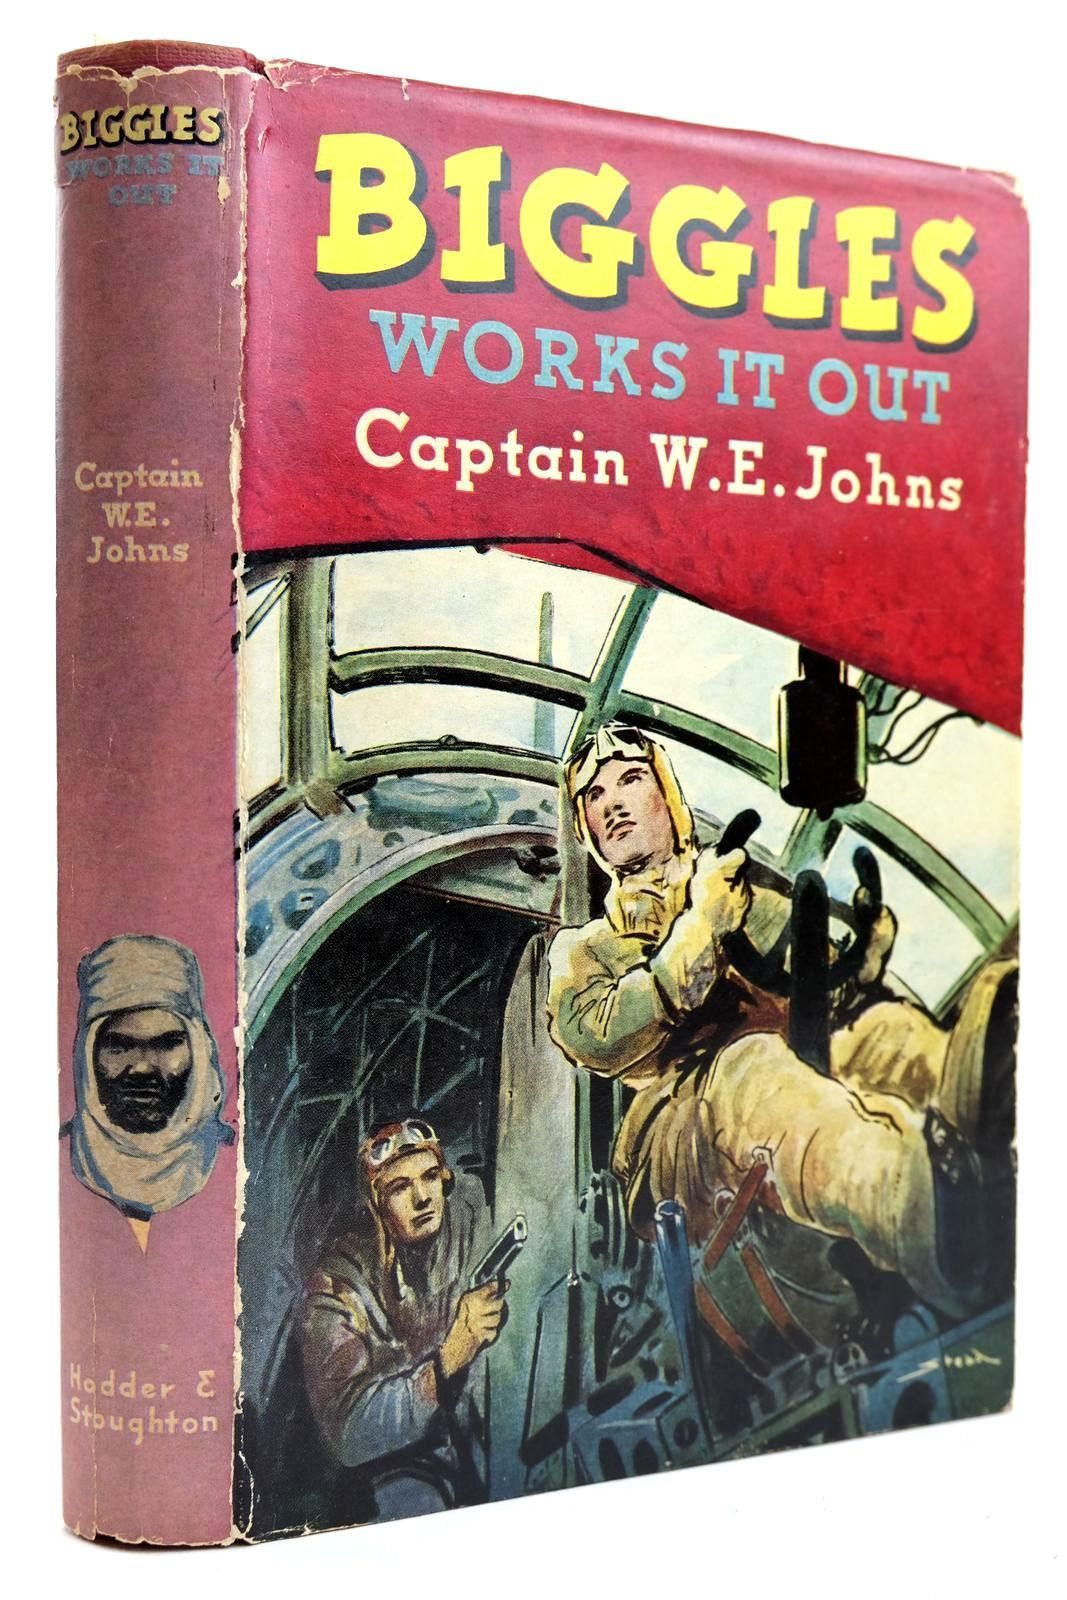 Photo of BIGGLES WORKS IT OUT written by Johns, W.E. illustrated by Stead,  published by Hodder & Stoughton (STOCK CODE: 2132497)  for sale by Stella & Rose's Books